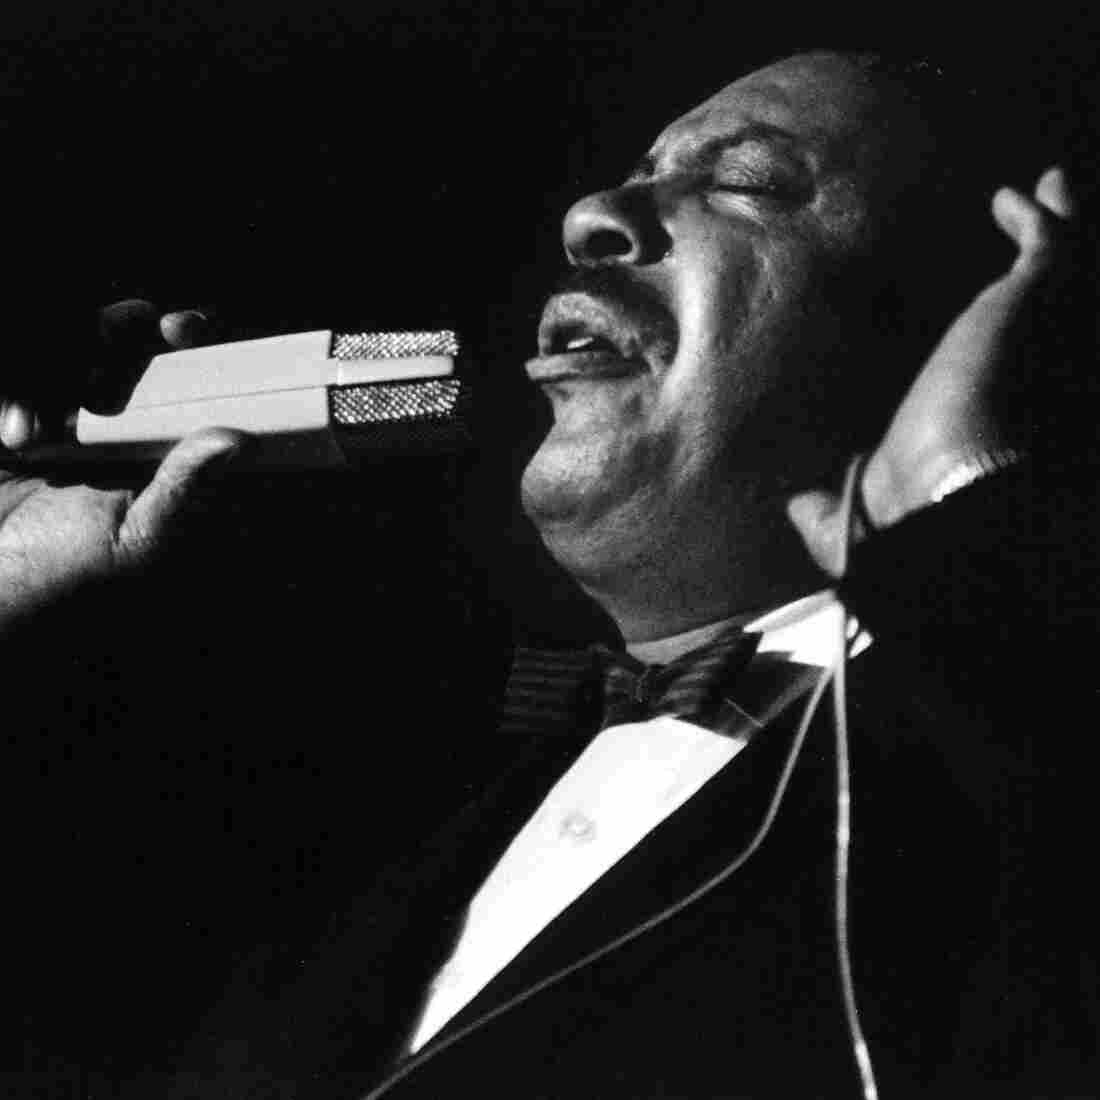 "When played on the radio in 1963, songs like Big Joe Turner's ""Shake, Rattle and Roll"" were code to Birmingham youths, telling them to assemble."